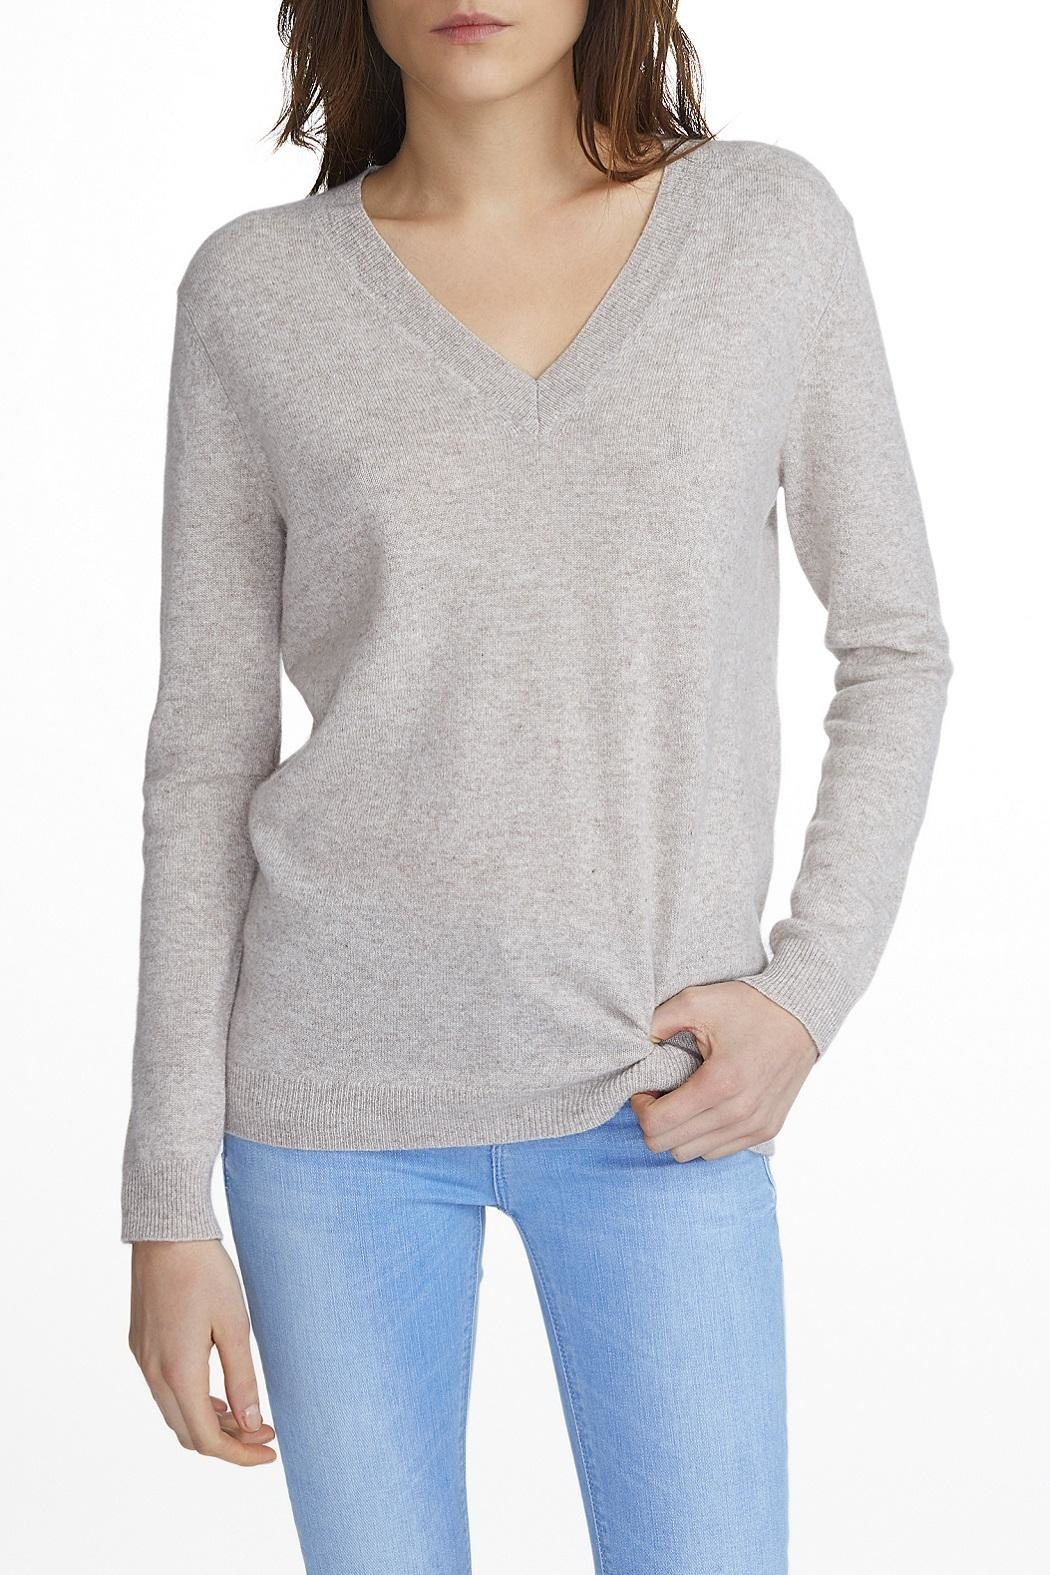 White + Warren Cashmere V-Neck Sweater - Front Cropped Image